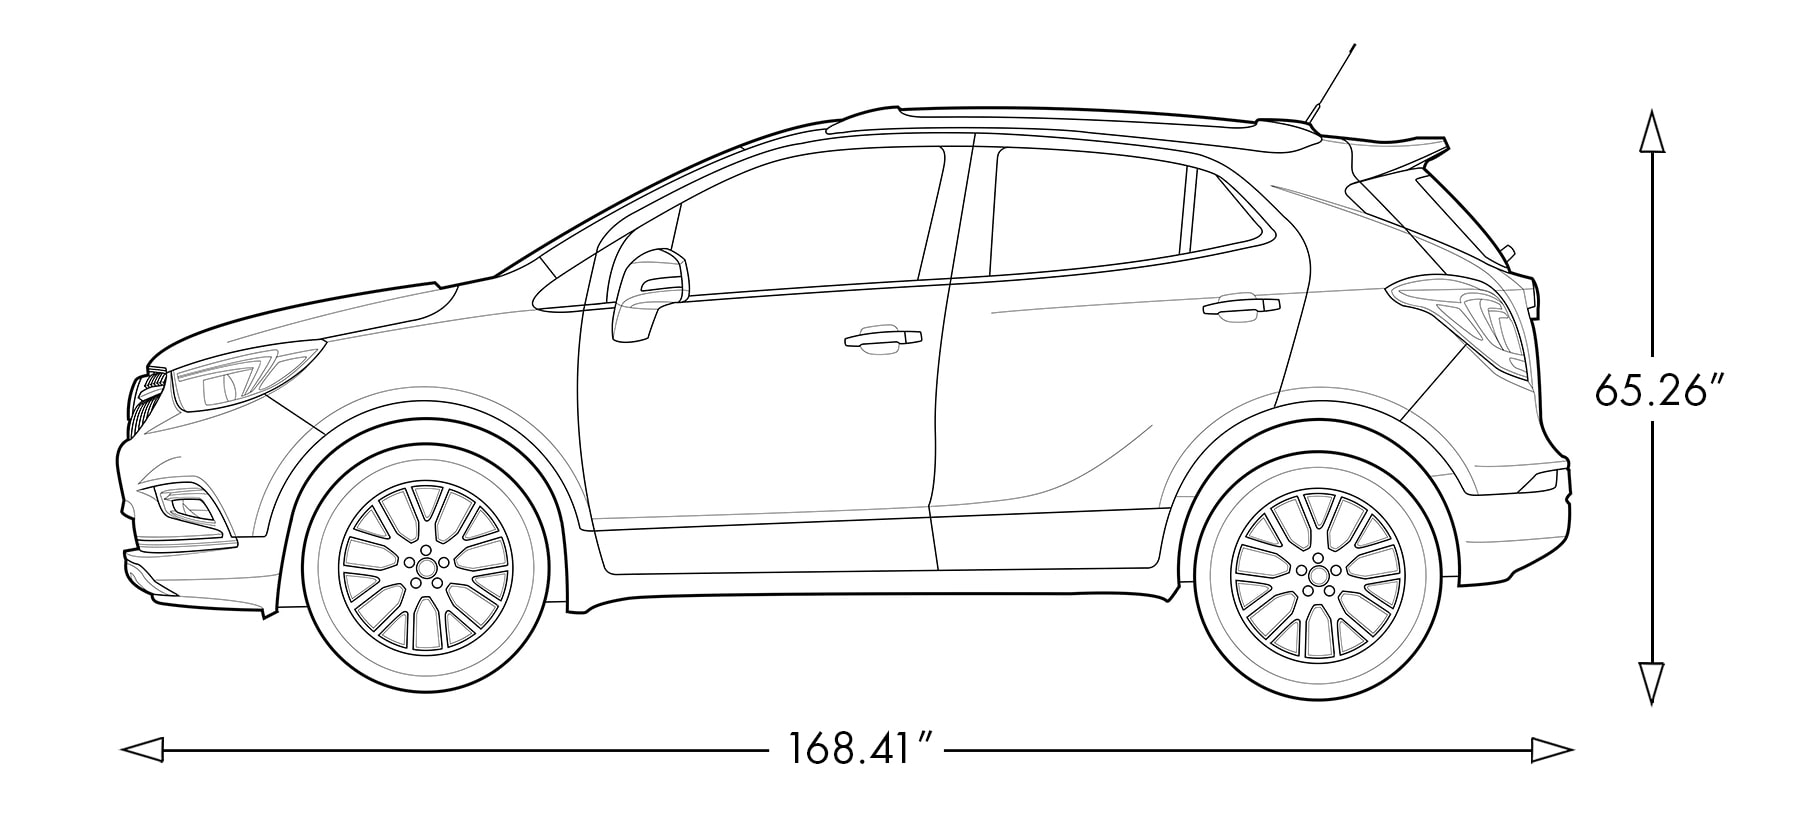 Diagram image showing the height and length of the 2019 Buick Encore small luxury SUV.